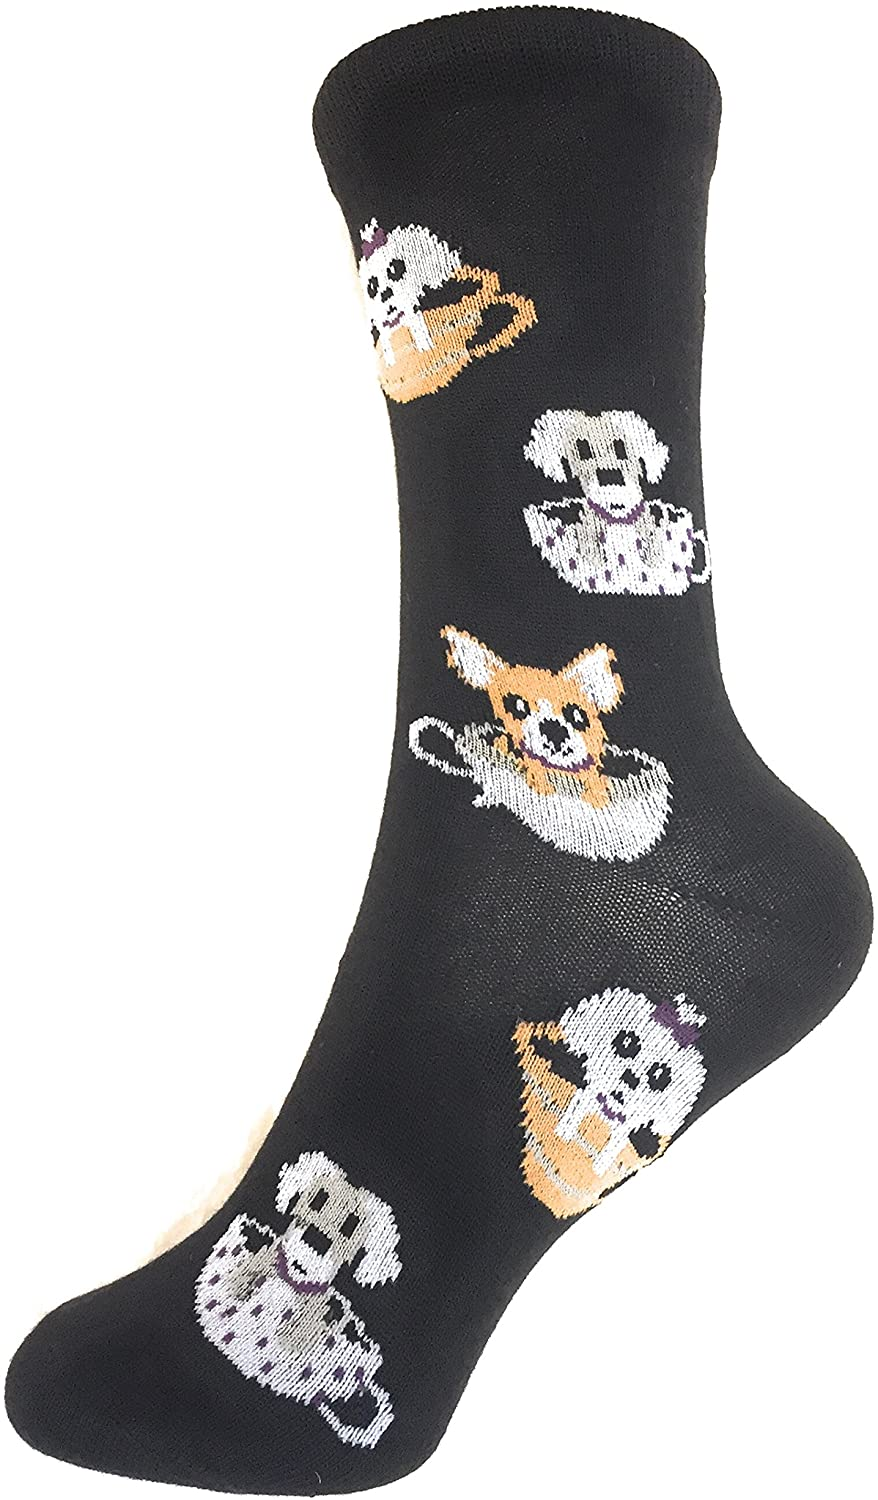 Socks-Women Crew Novelty Comfy Cozy, Trendy, Fashionable and Fun Patterns To Love